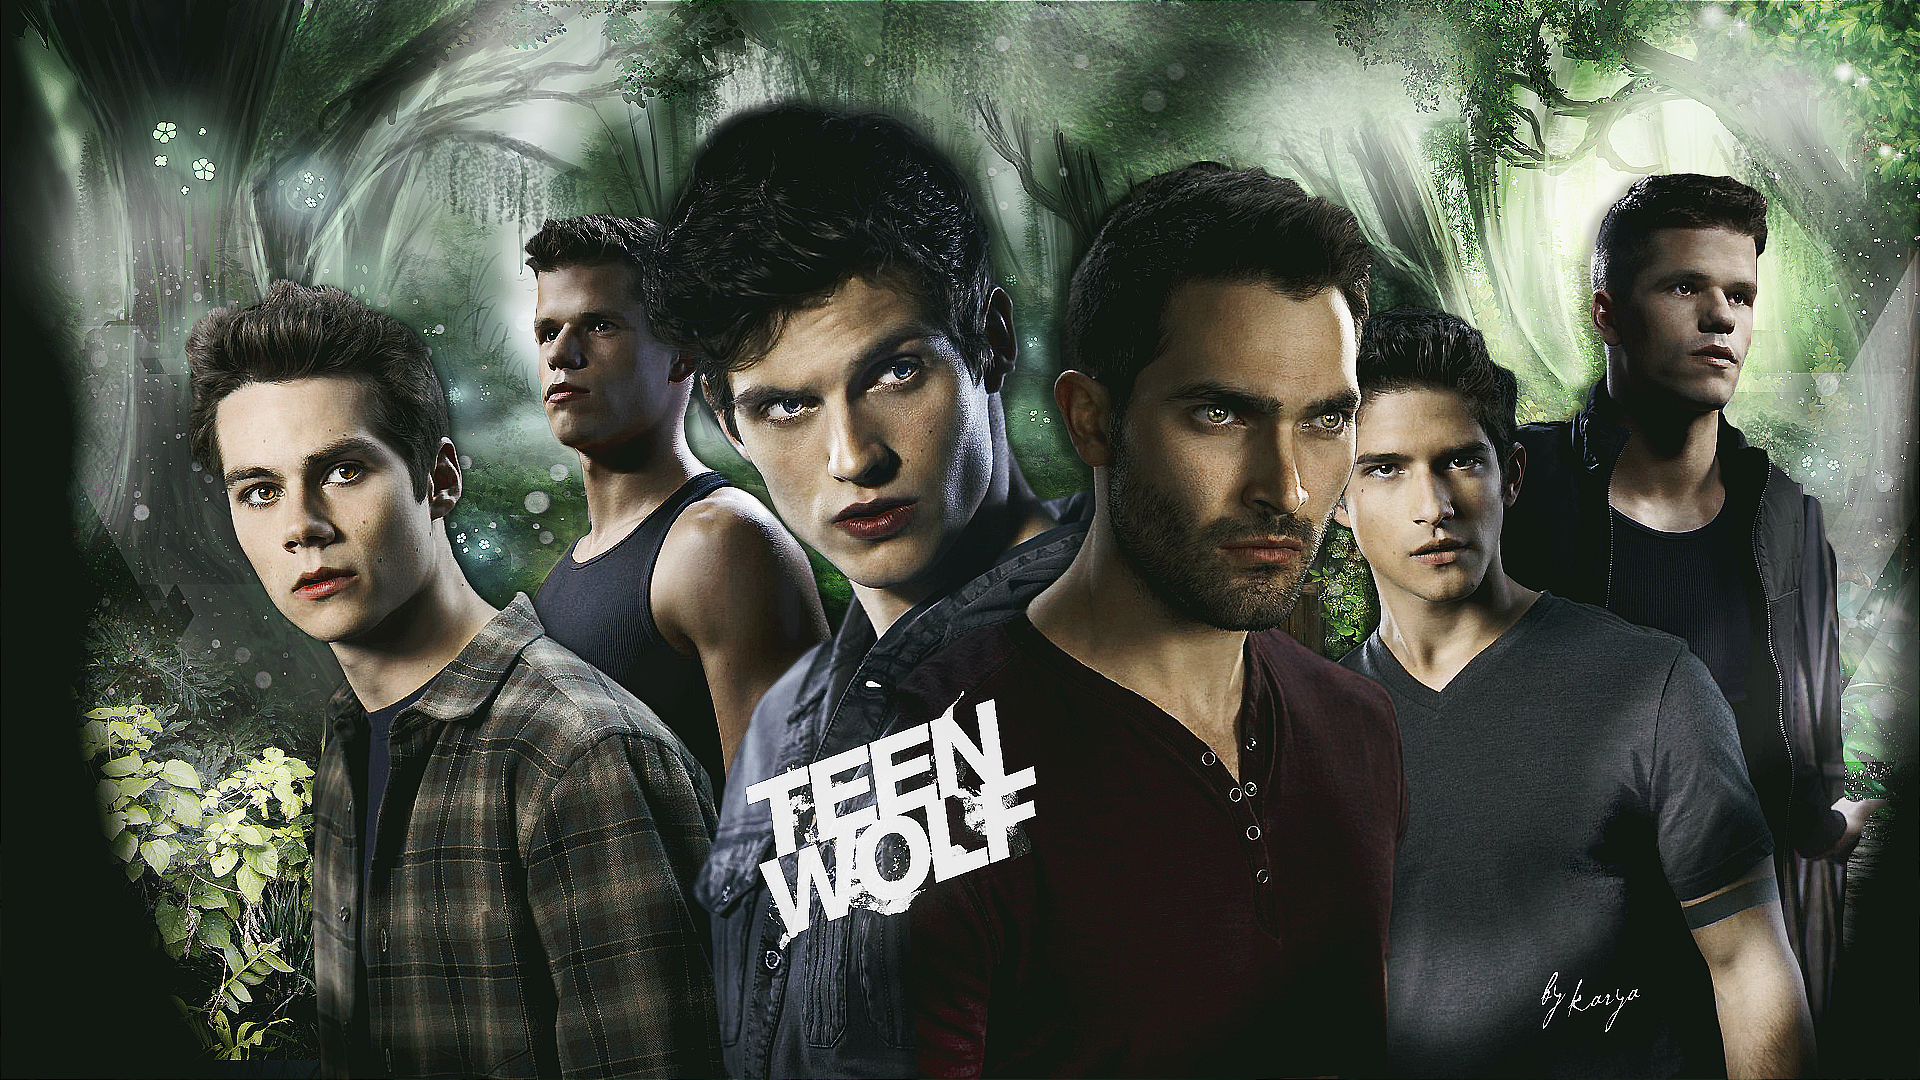 Teen Wolf Wallpaper - WallpaperSafari